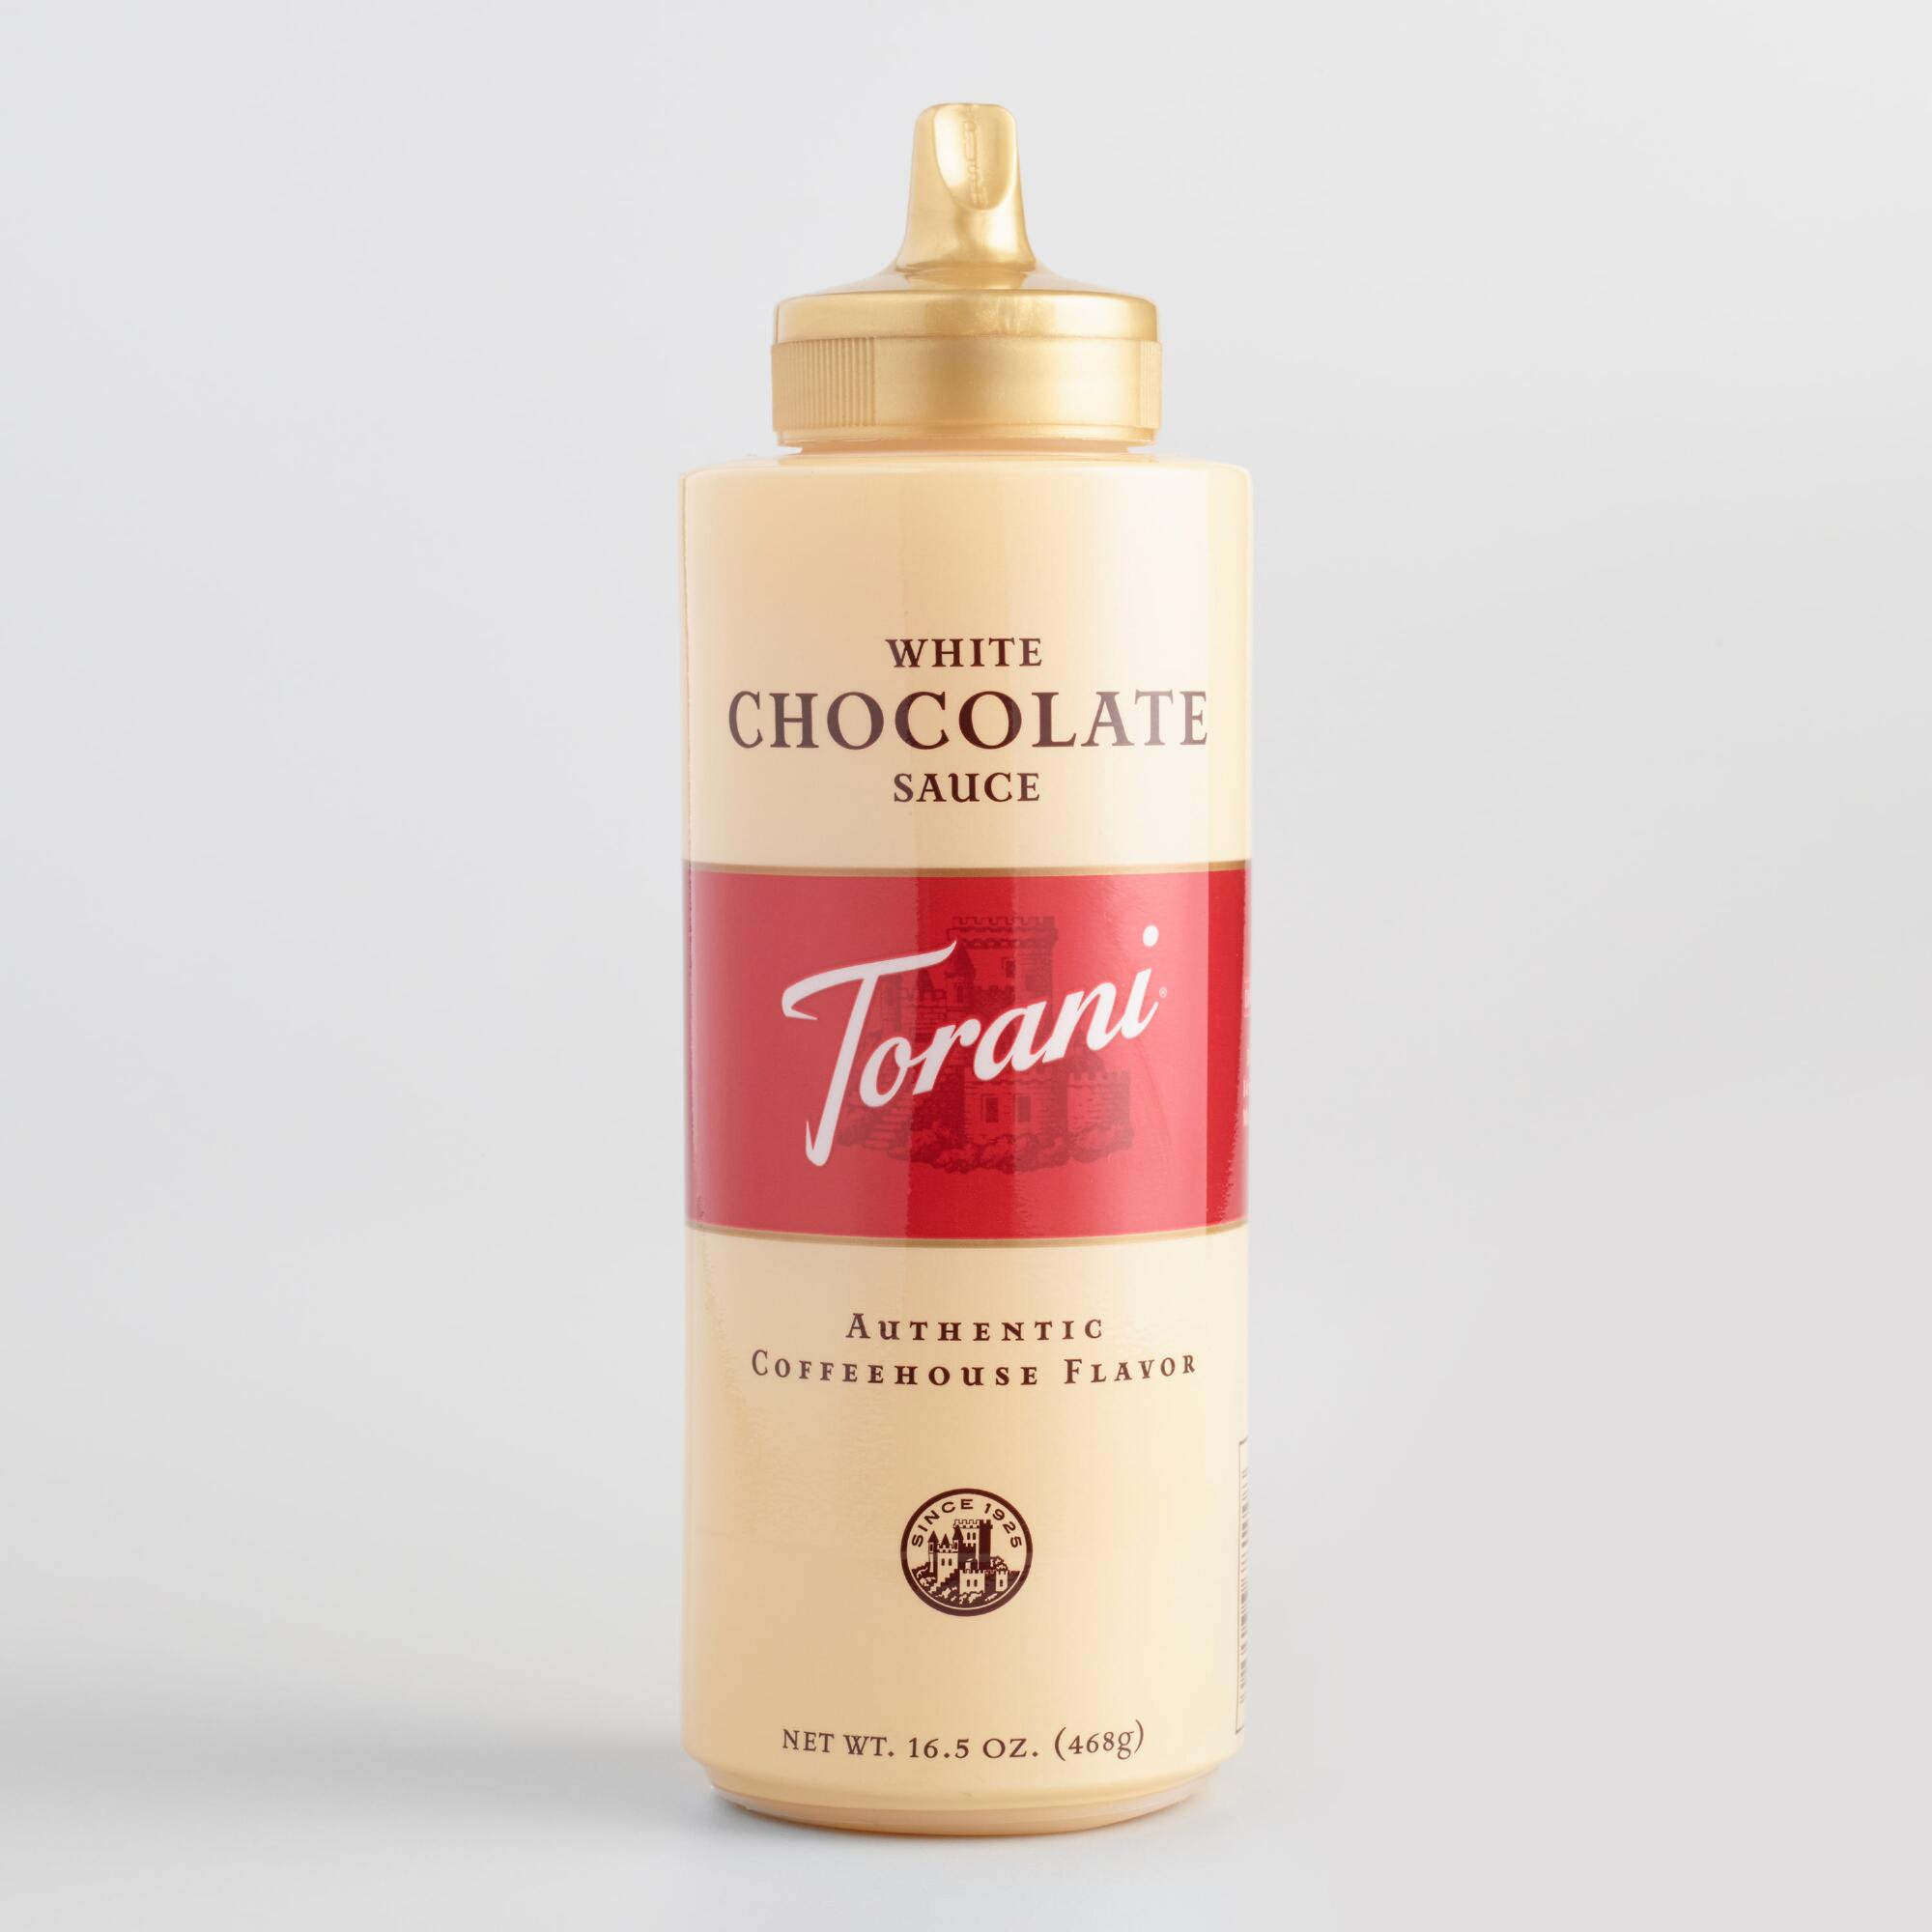 Torani White Chocolate Sauce from Cost Plus World Market